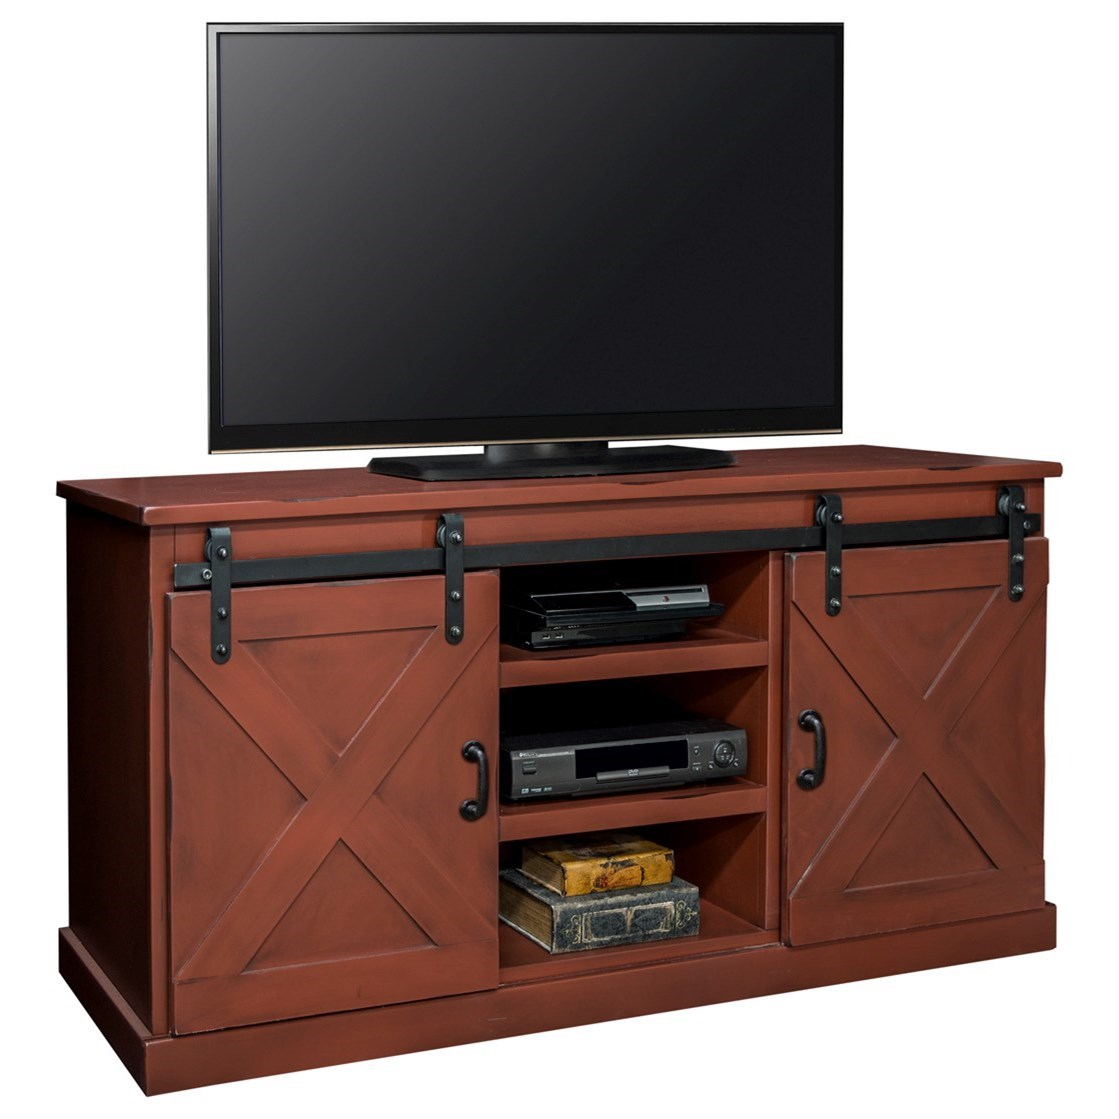 "Legends Furniture Farmhouse Collection Farmhouse 66"" TV Console - Item Number: FH1430-RRD"